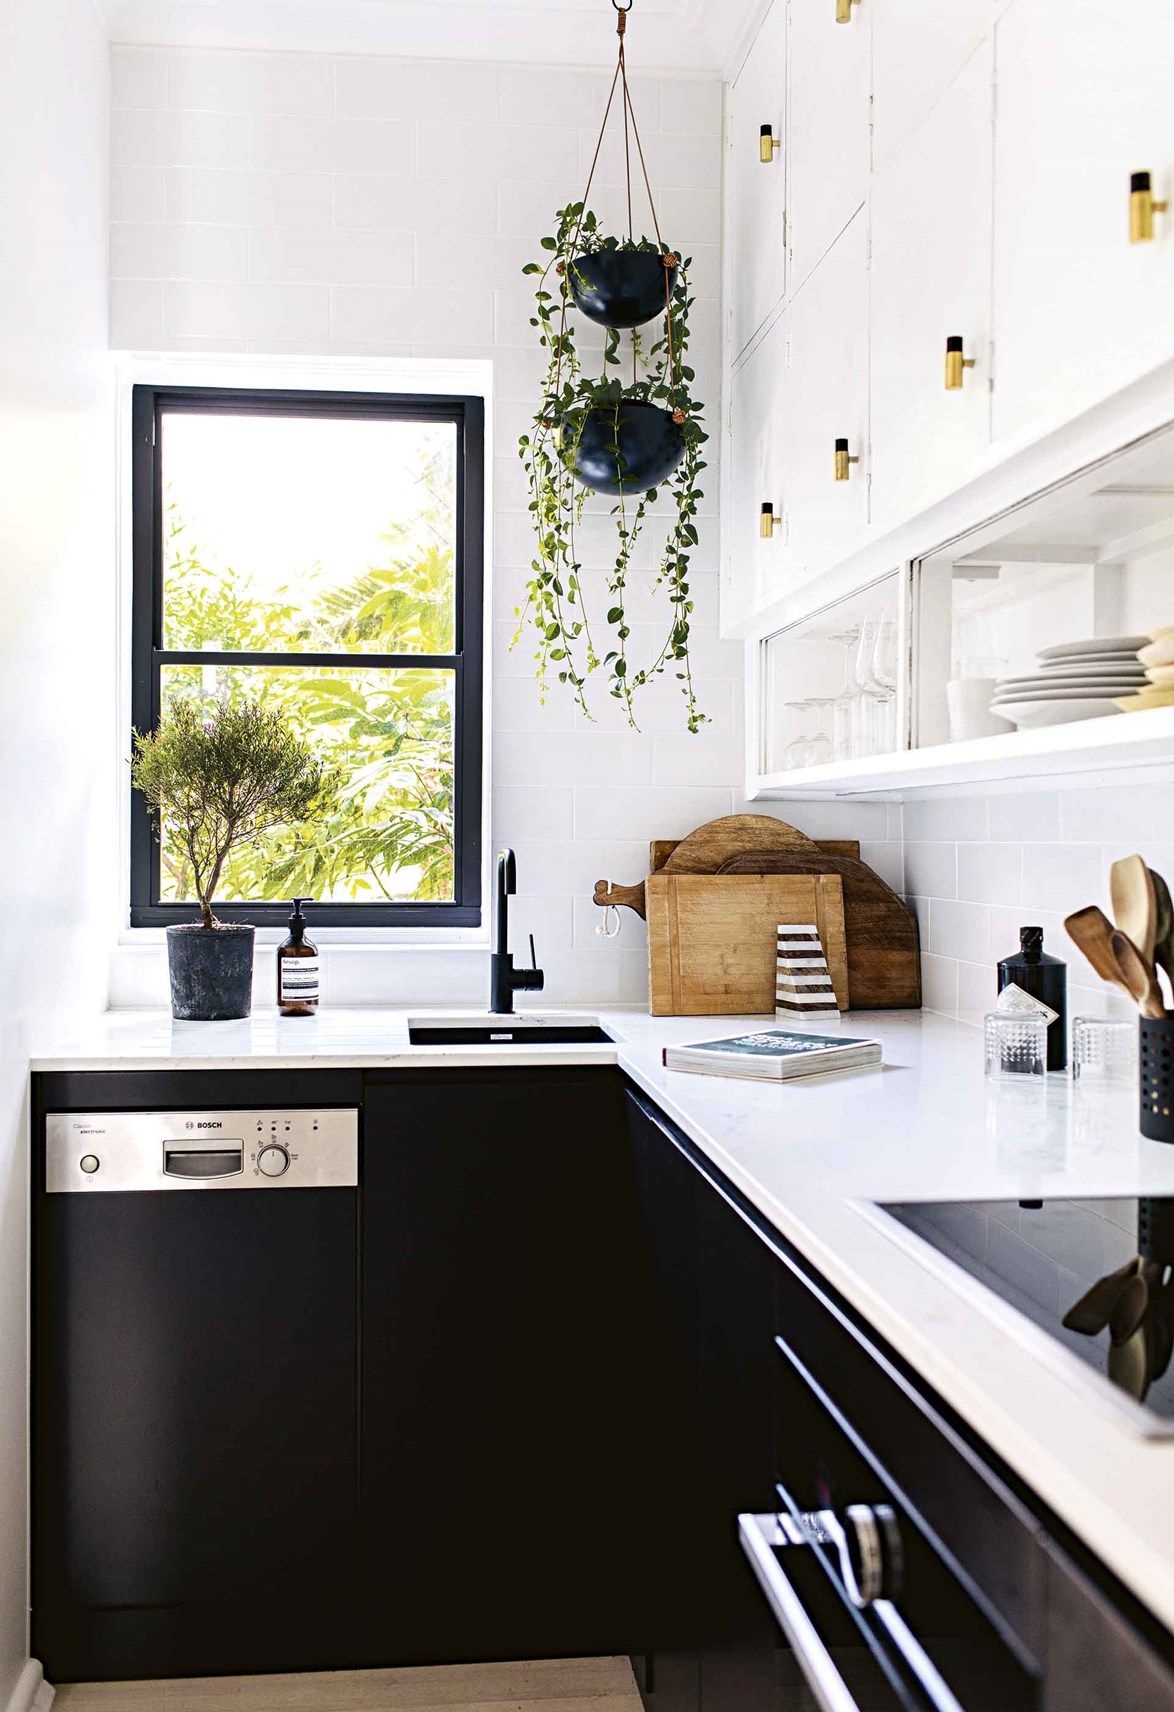 Updating your cabinetry hardware can make a huge difference for little cost. Here, the wall cabinets were updated with Anthropologie handles. A window frame painted in black allows the view to pop.